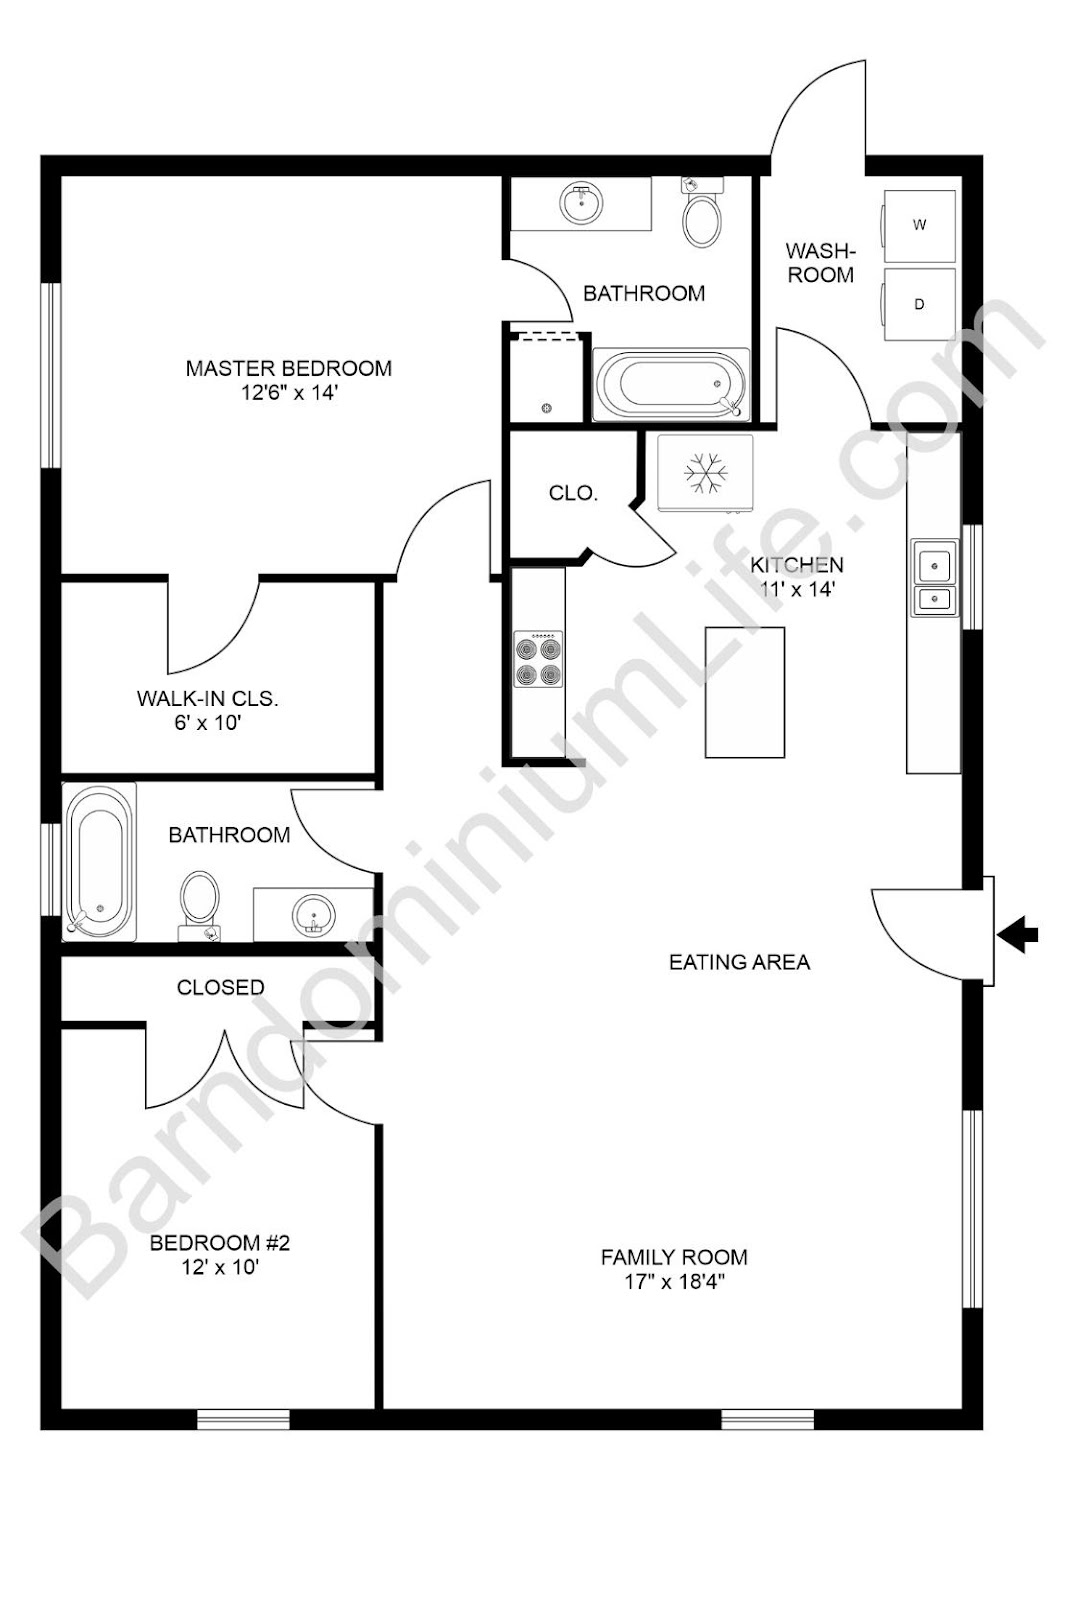 2 bedroom barndominium floor plans example 1